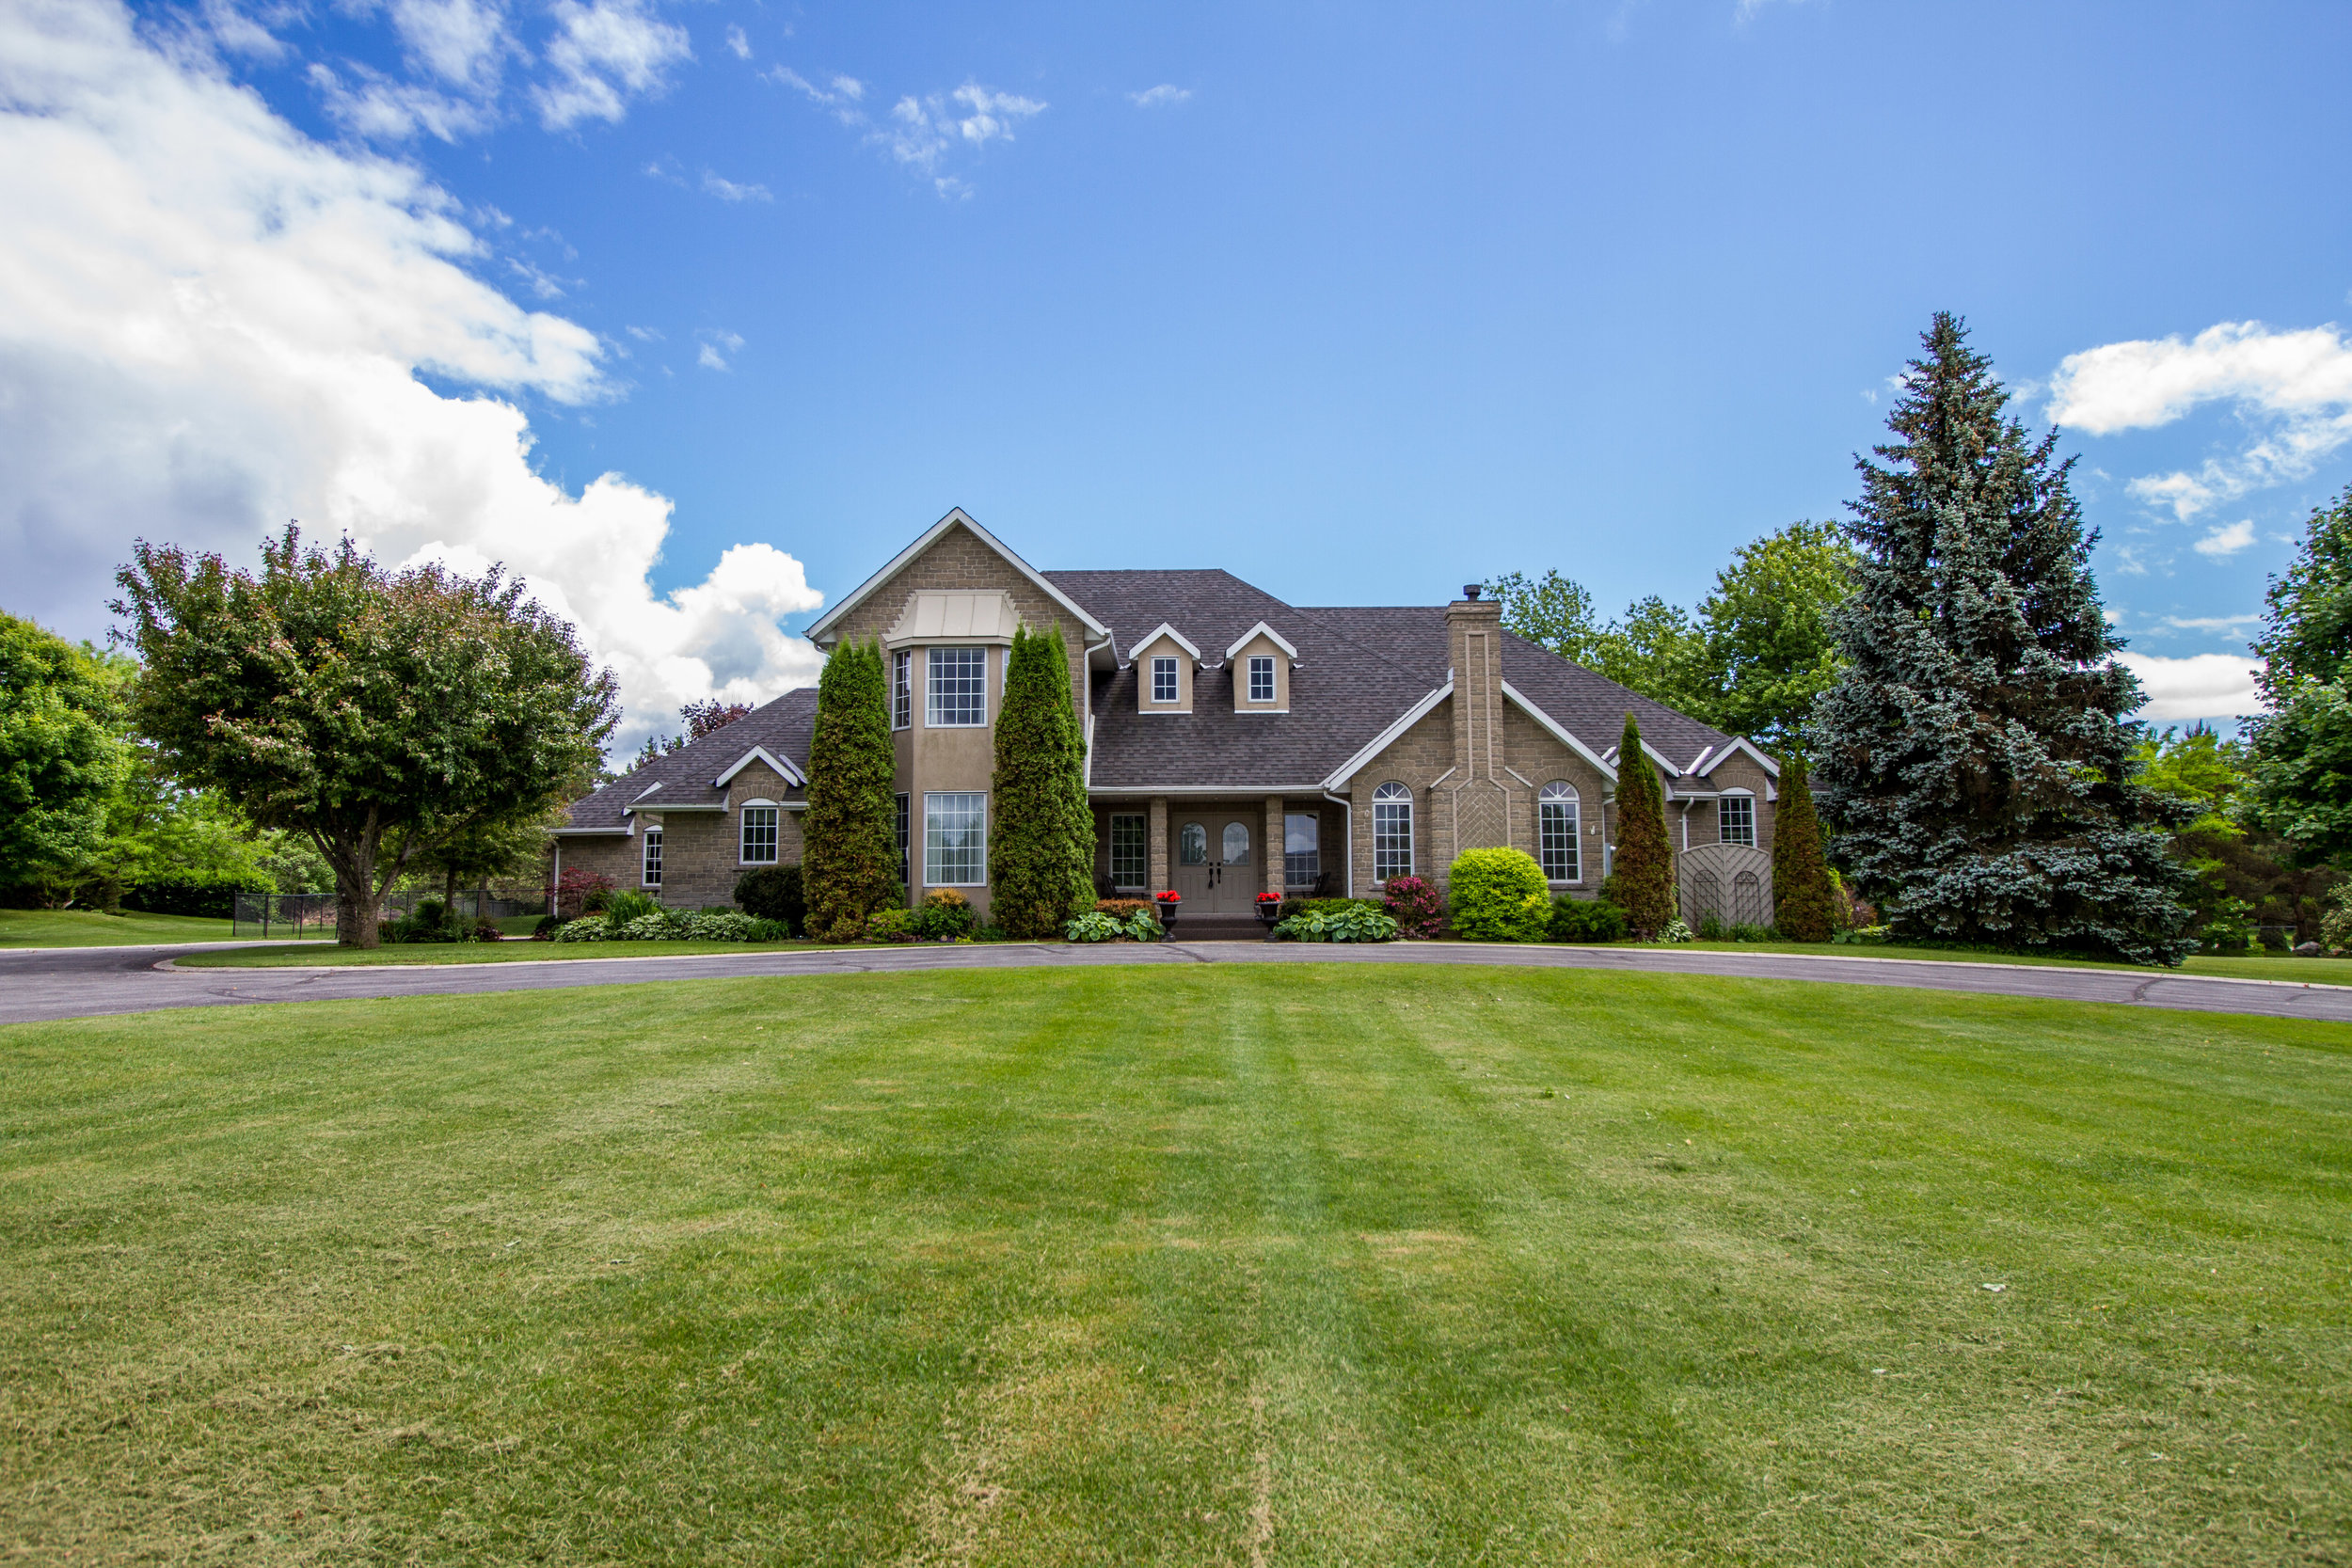 13 Conner Drive - SOLD -